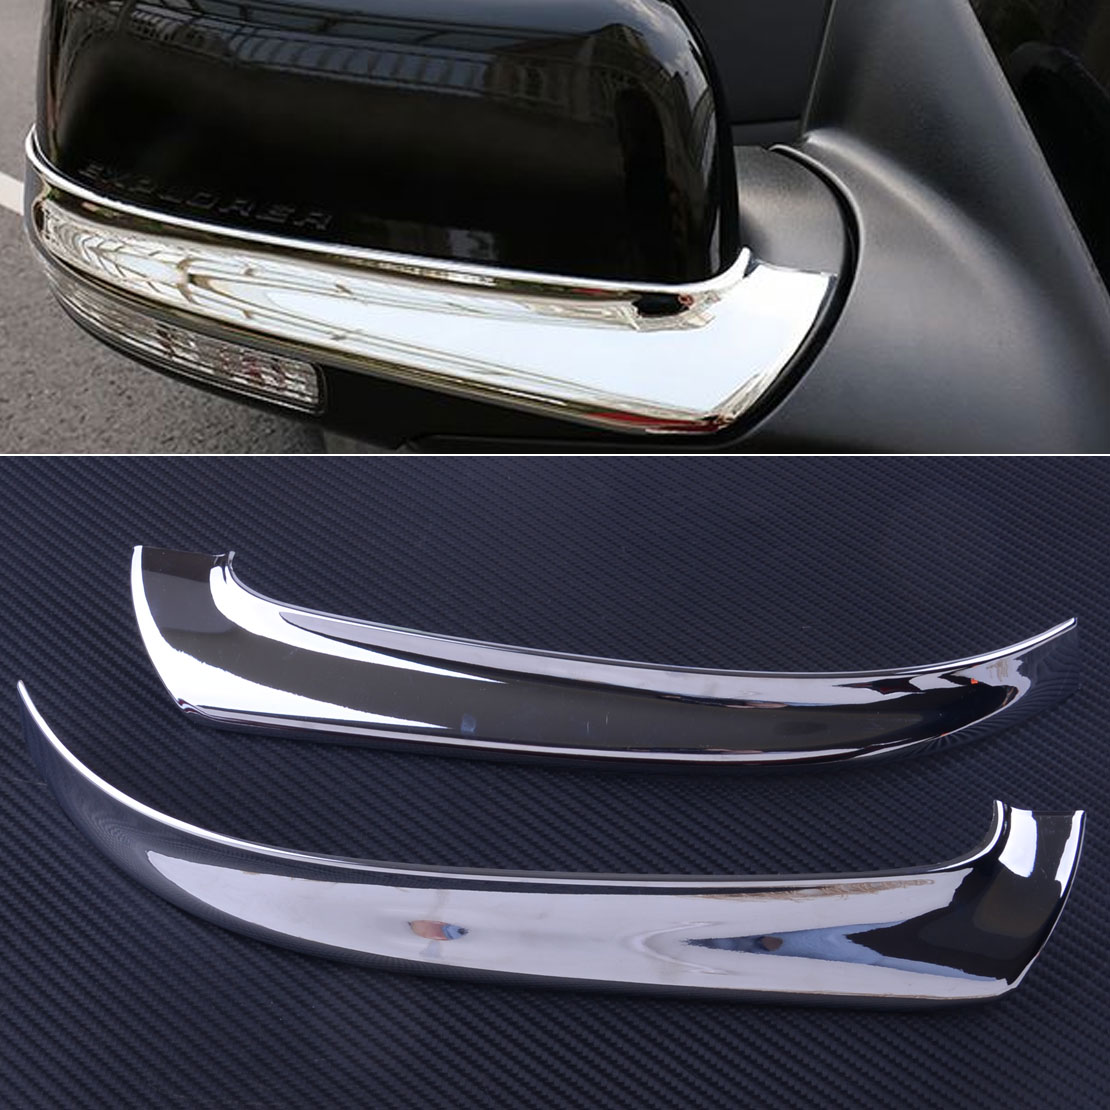 DWCX 2pcs Silver ABS Left Right Chrome Plated Rearview Side <font><b>Mirror</b></font> Cover Strip Trim Fit For <font><b>Ford</b></font> <font><b>Explorer</b></font> 2016 2017 2018 2019 image